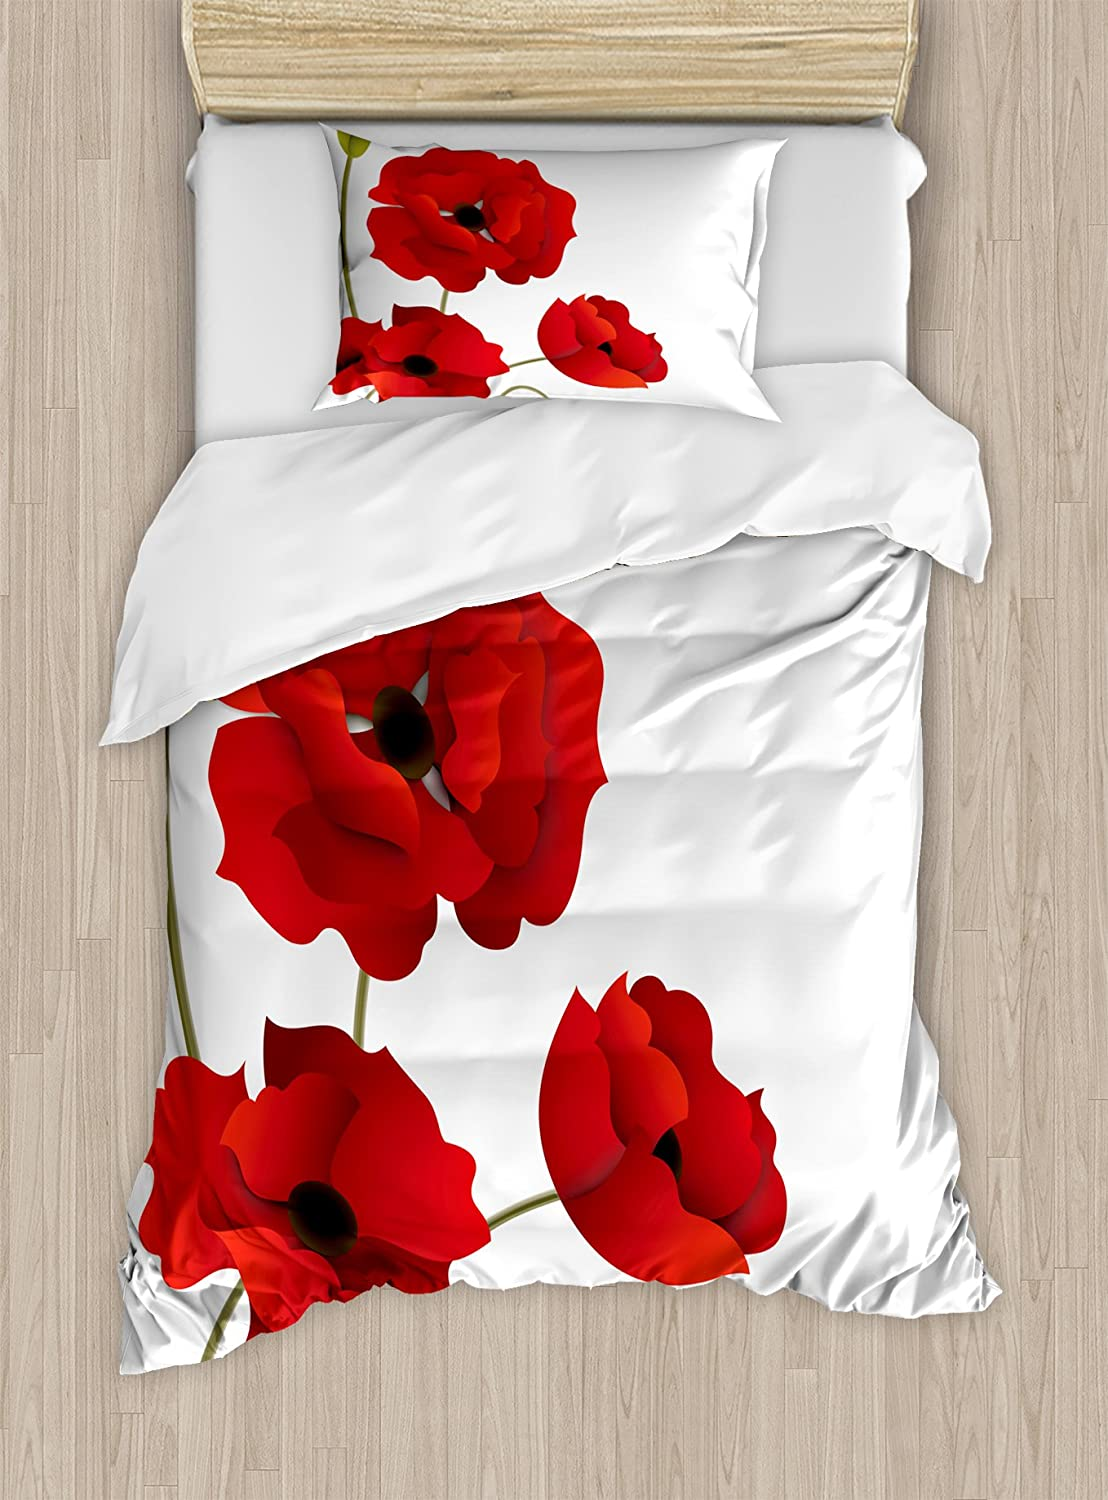 Ambesonne Floral Duvet Cover Set Twin Size, Poppy Flowers Vivid Petals with Buds Pastoral Purity Mother Earth Nature Design, Decorative 2 Piece Bedding Set with 1 Pillow Sham, Red Green